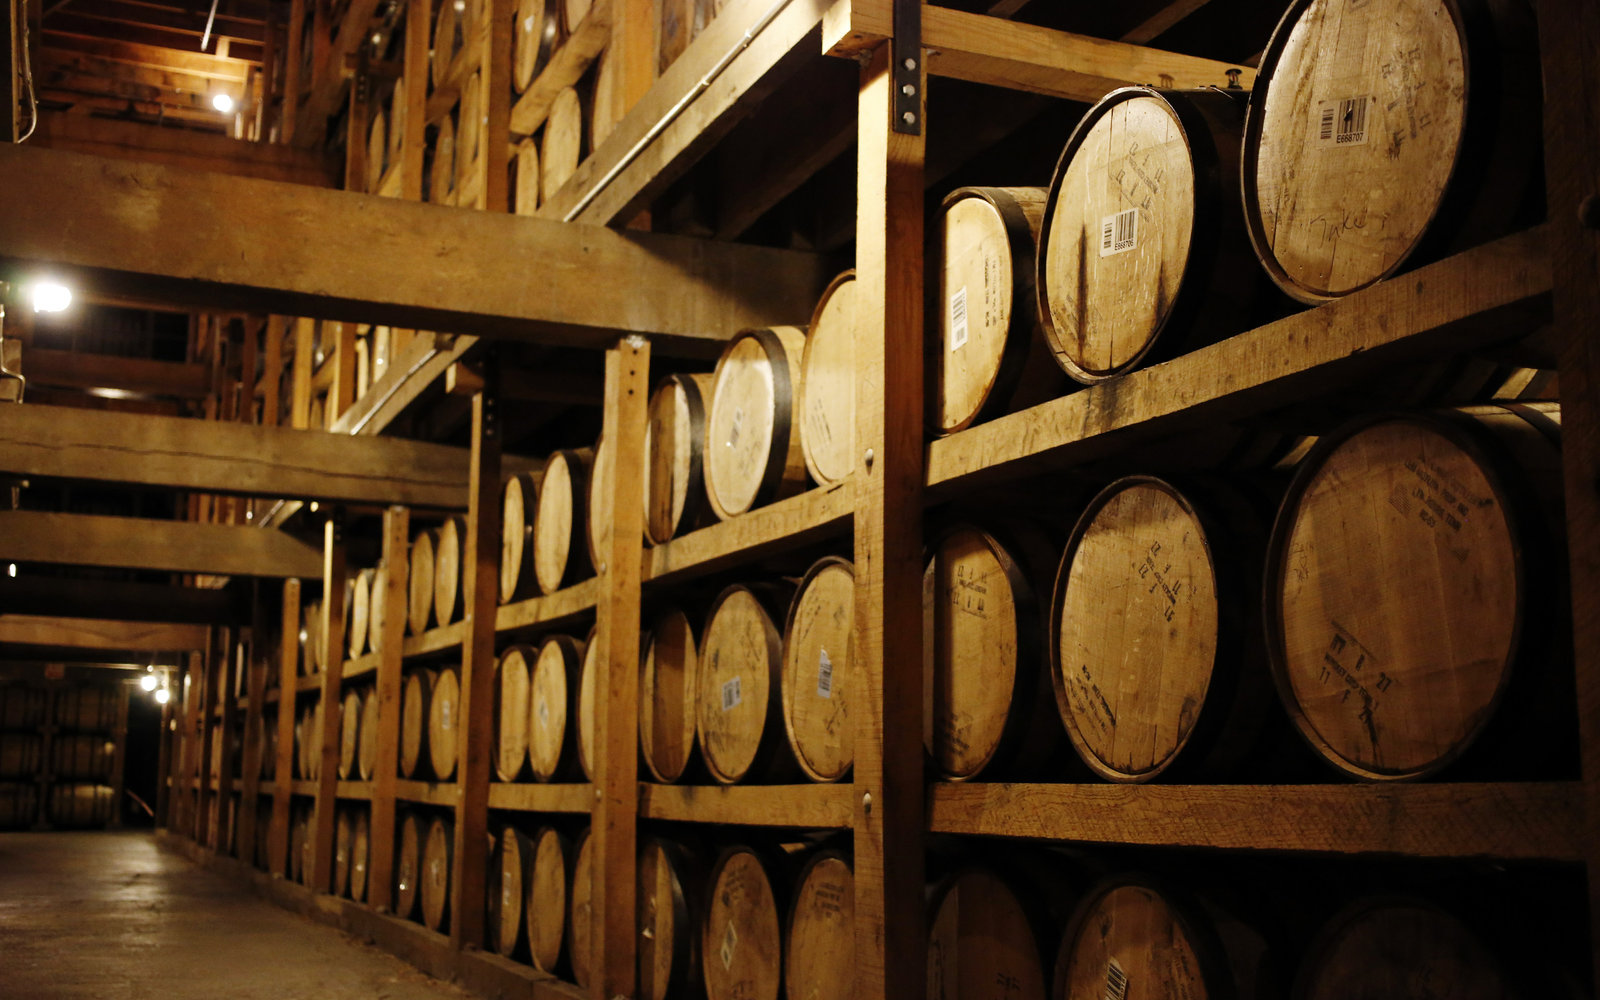 Transportation Company - Jack Daniels - Breweries, Wineries and Distilleries